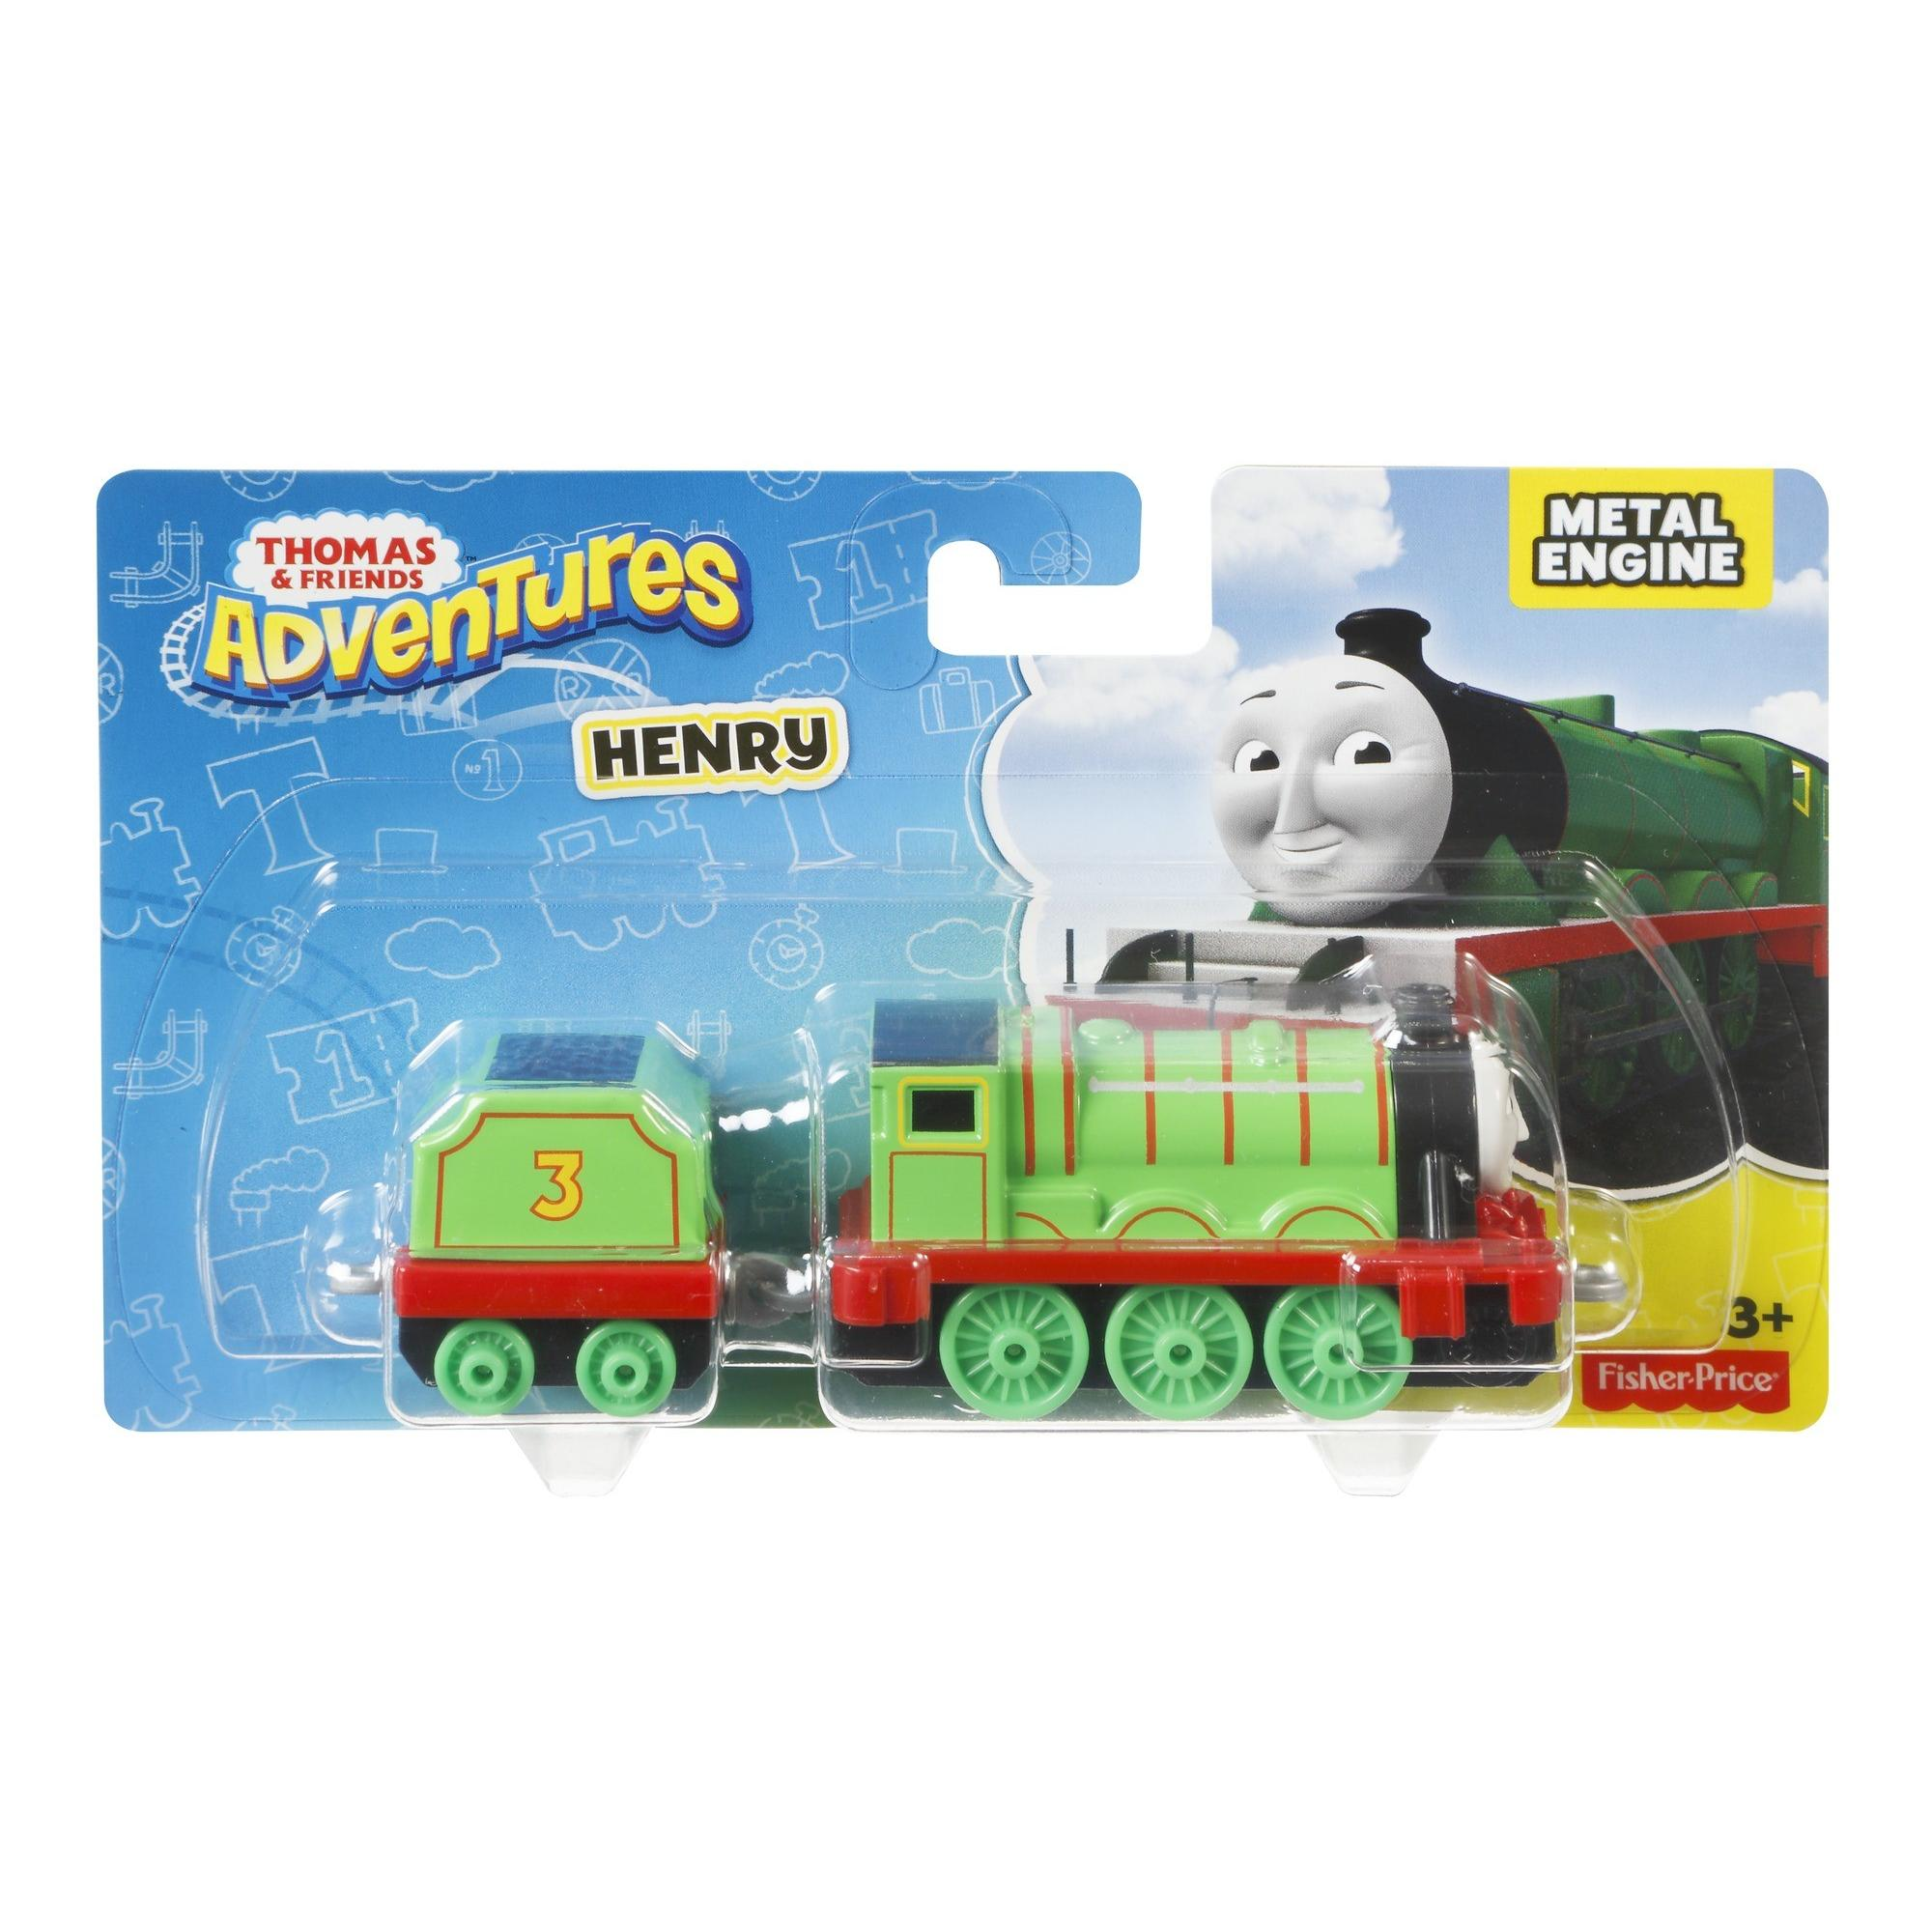 Thomas Friends Adventures Henry